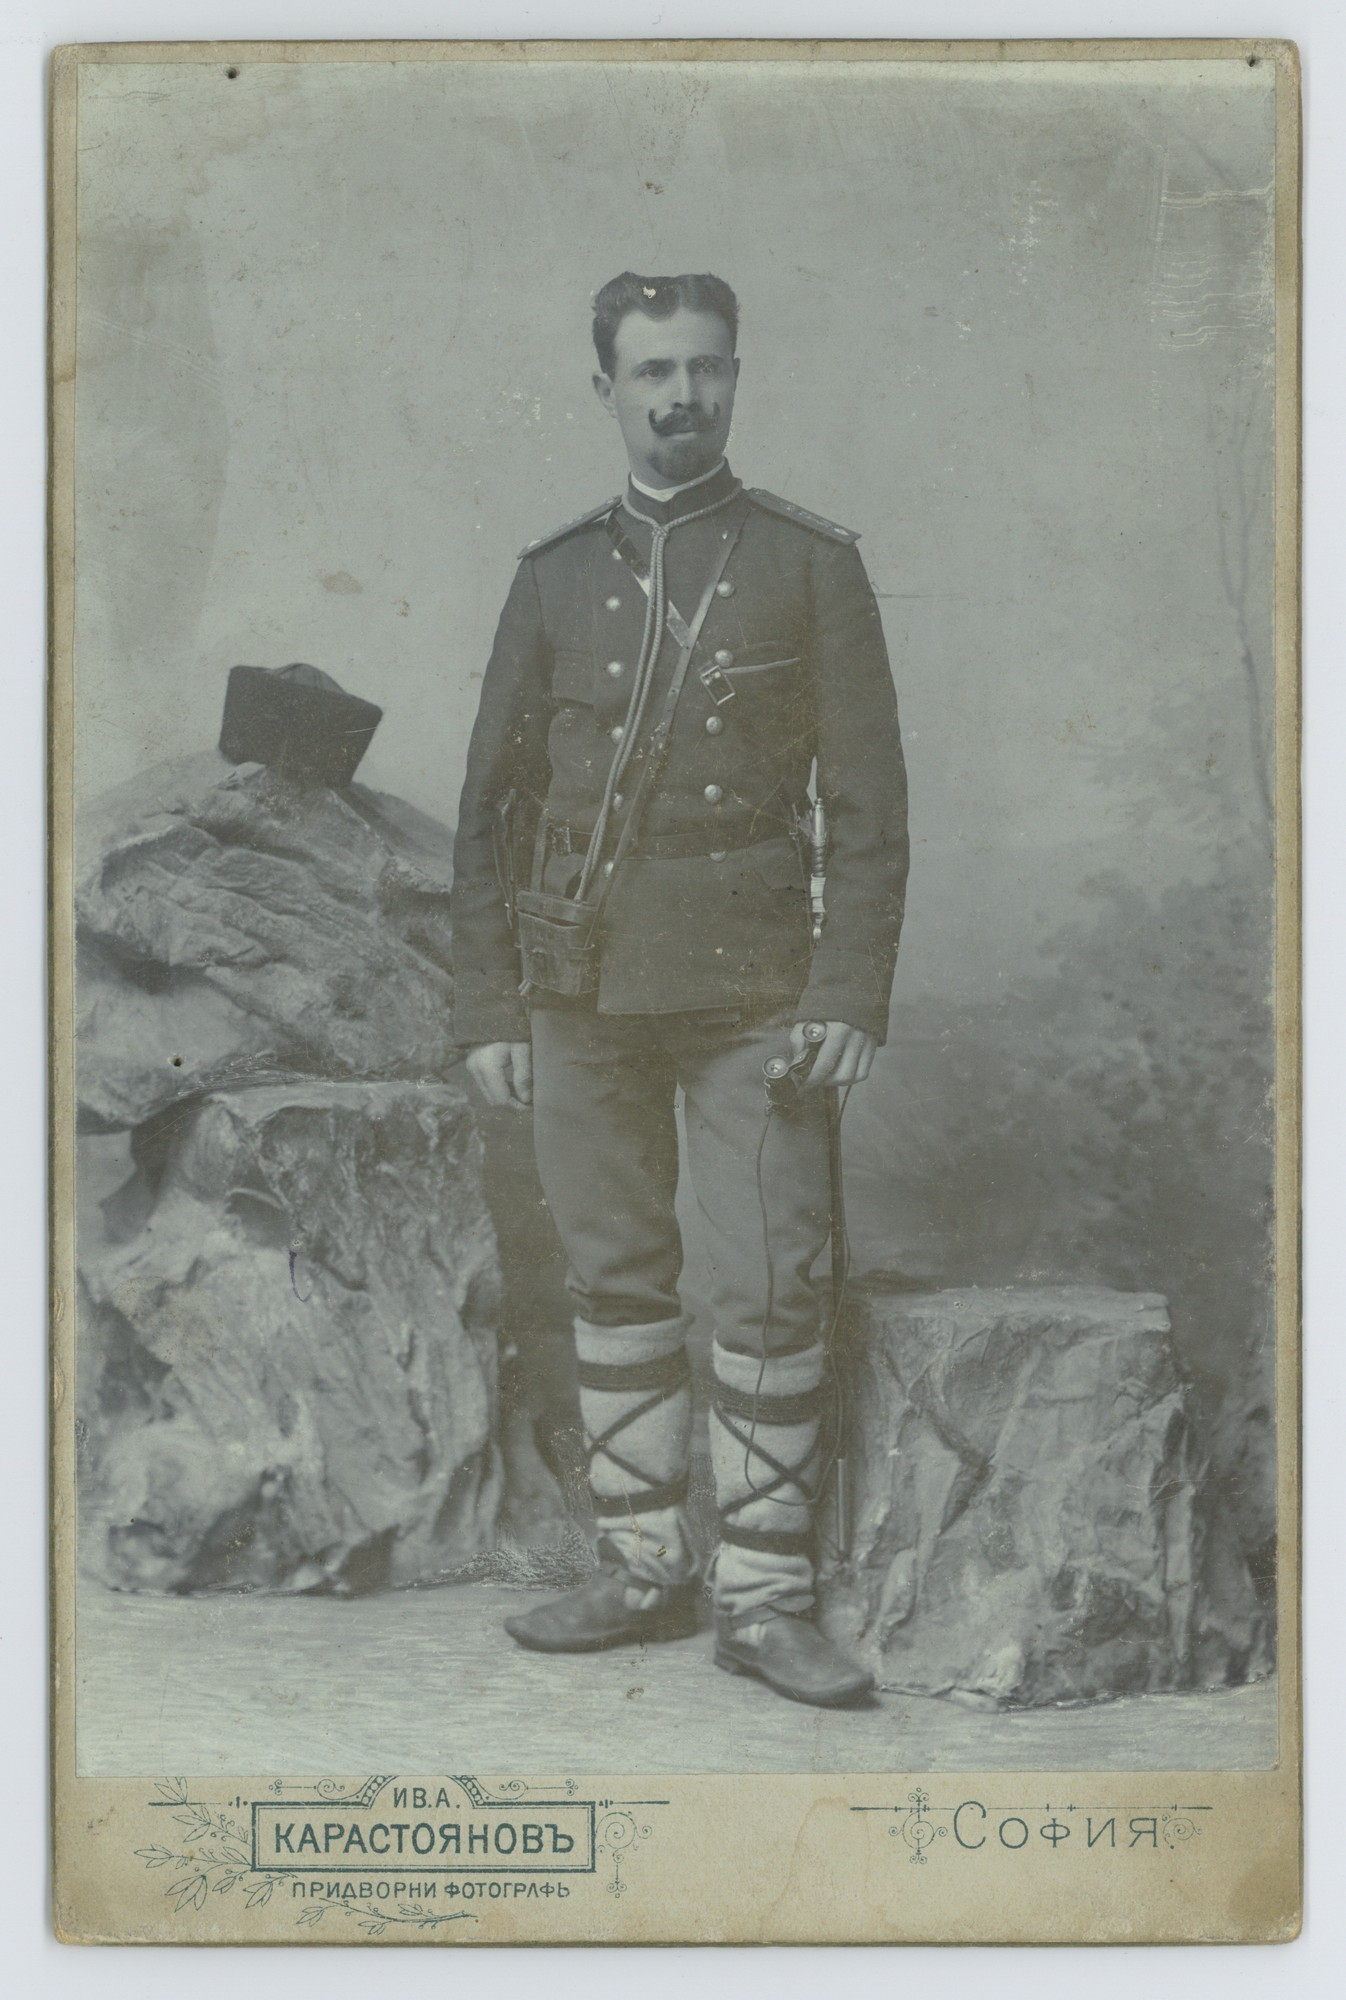 Studio portrait of a man in a uniform, © Scientific Archive of the Bulgarian Academy of Sciences